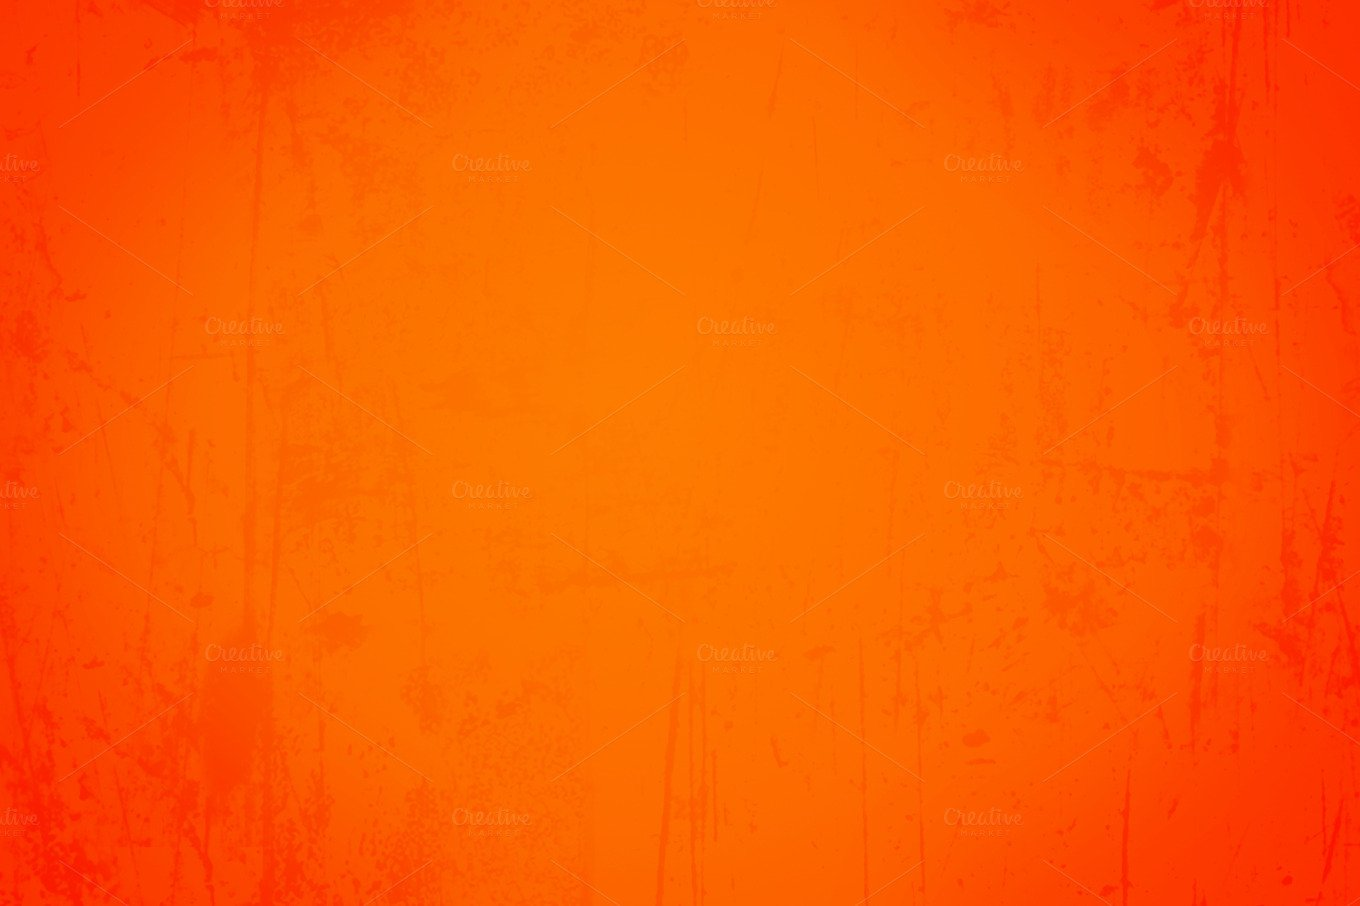 Orange Background Patterns on Creative Market 1360x906